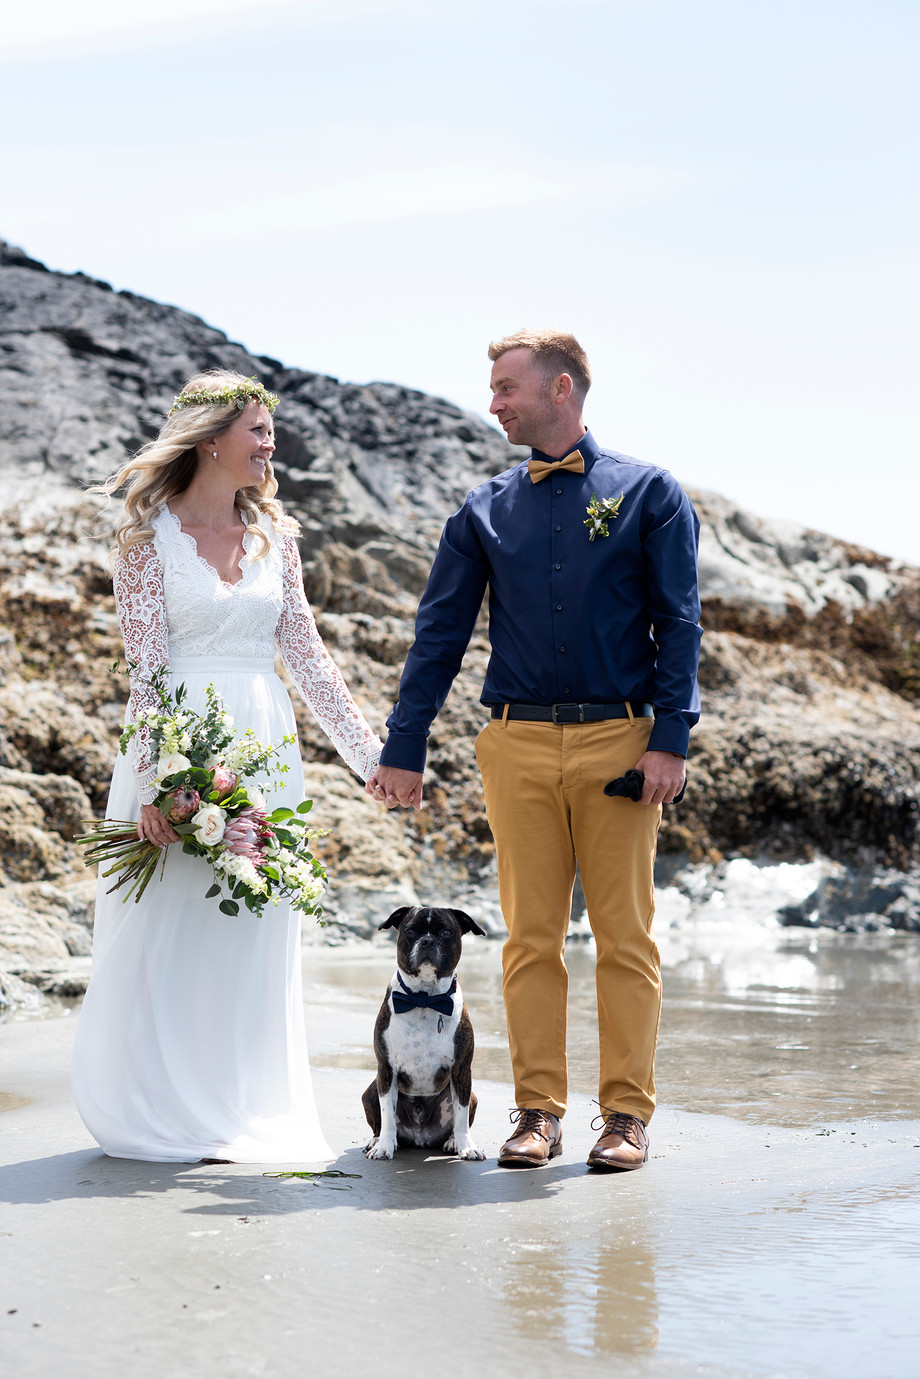 Beach Wedding in Tofino || Mo & Ryan || Tofino Wedding Photography